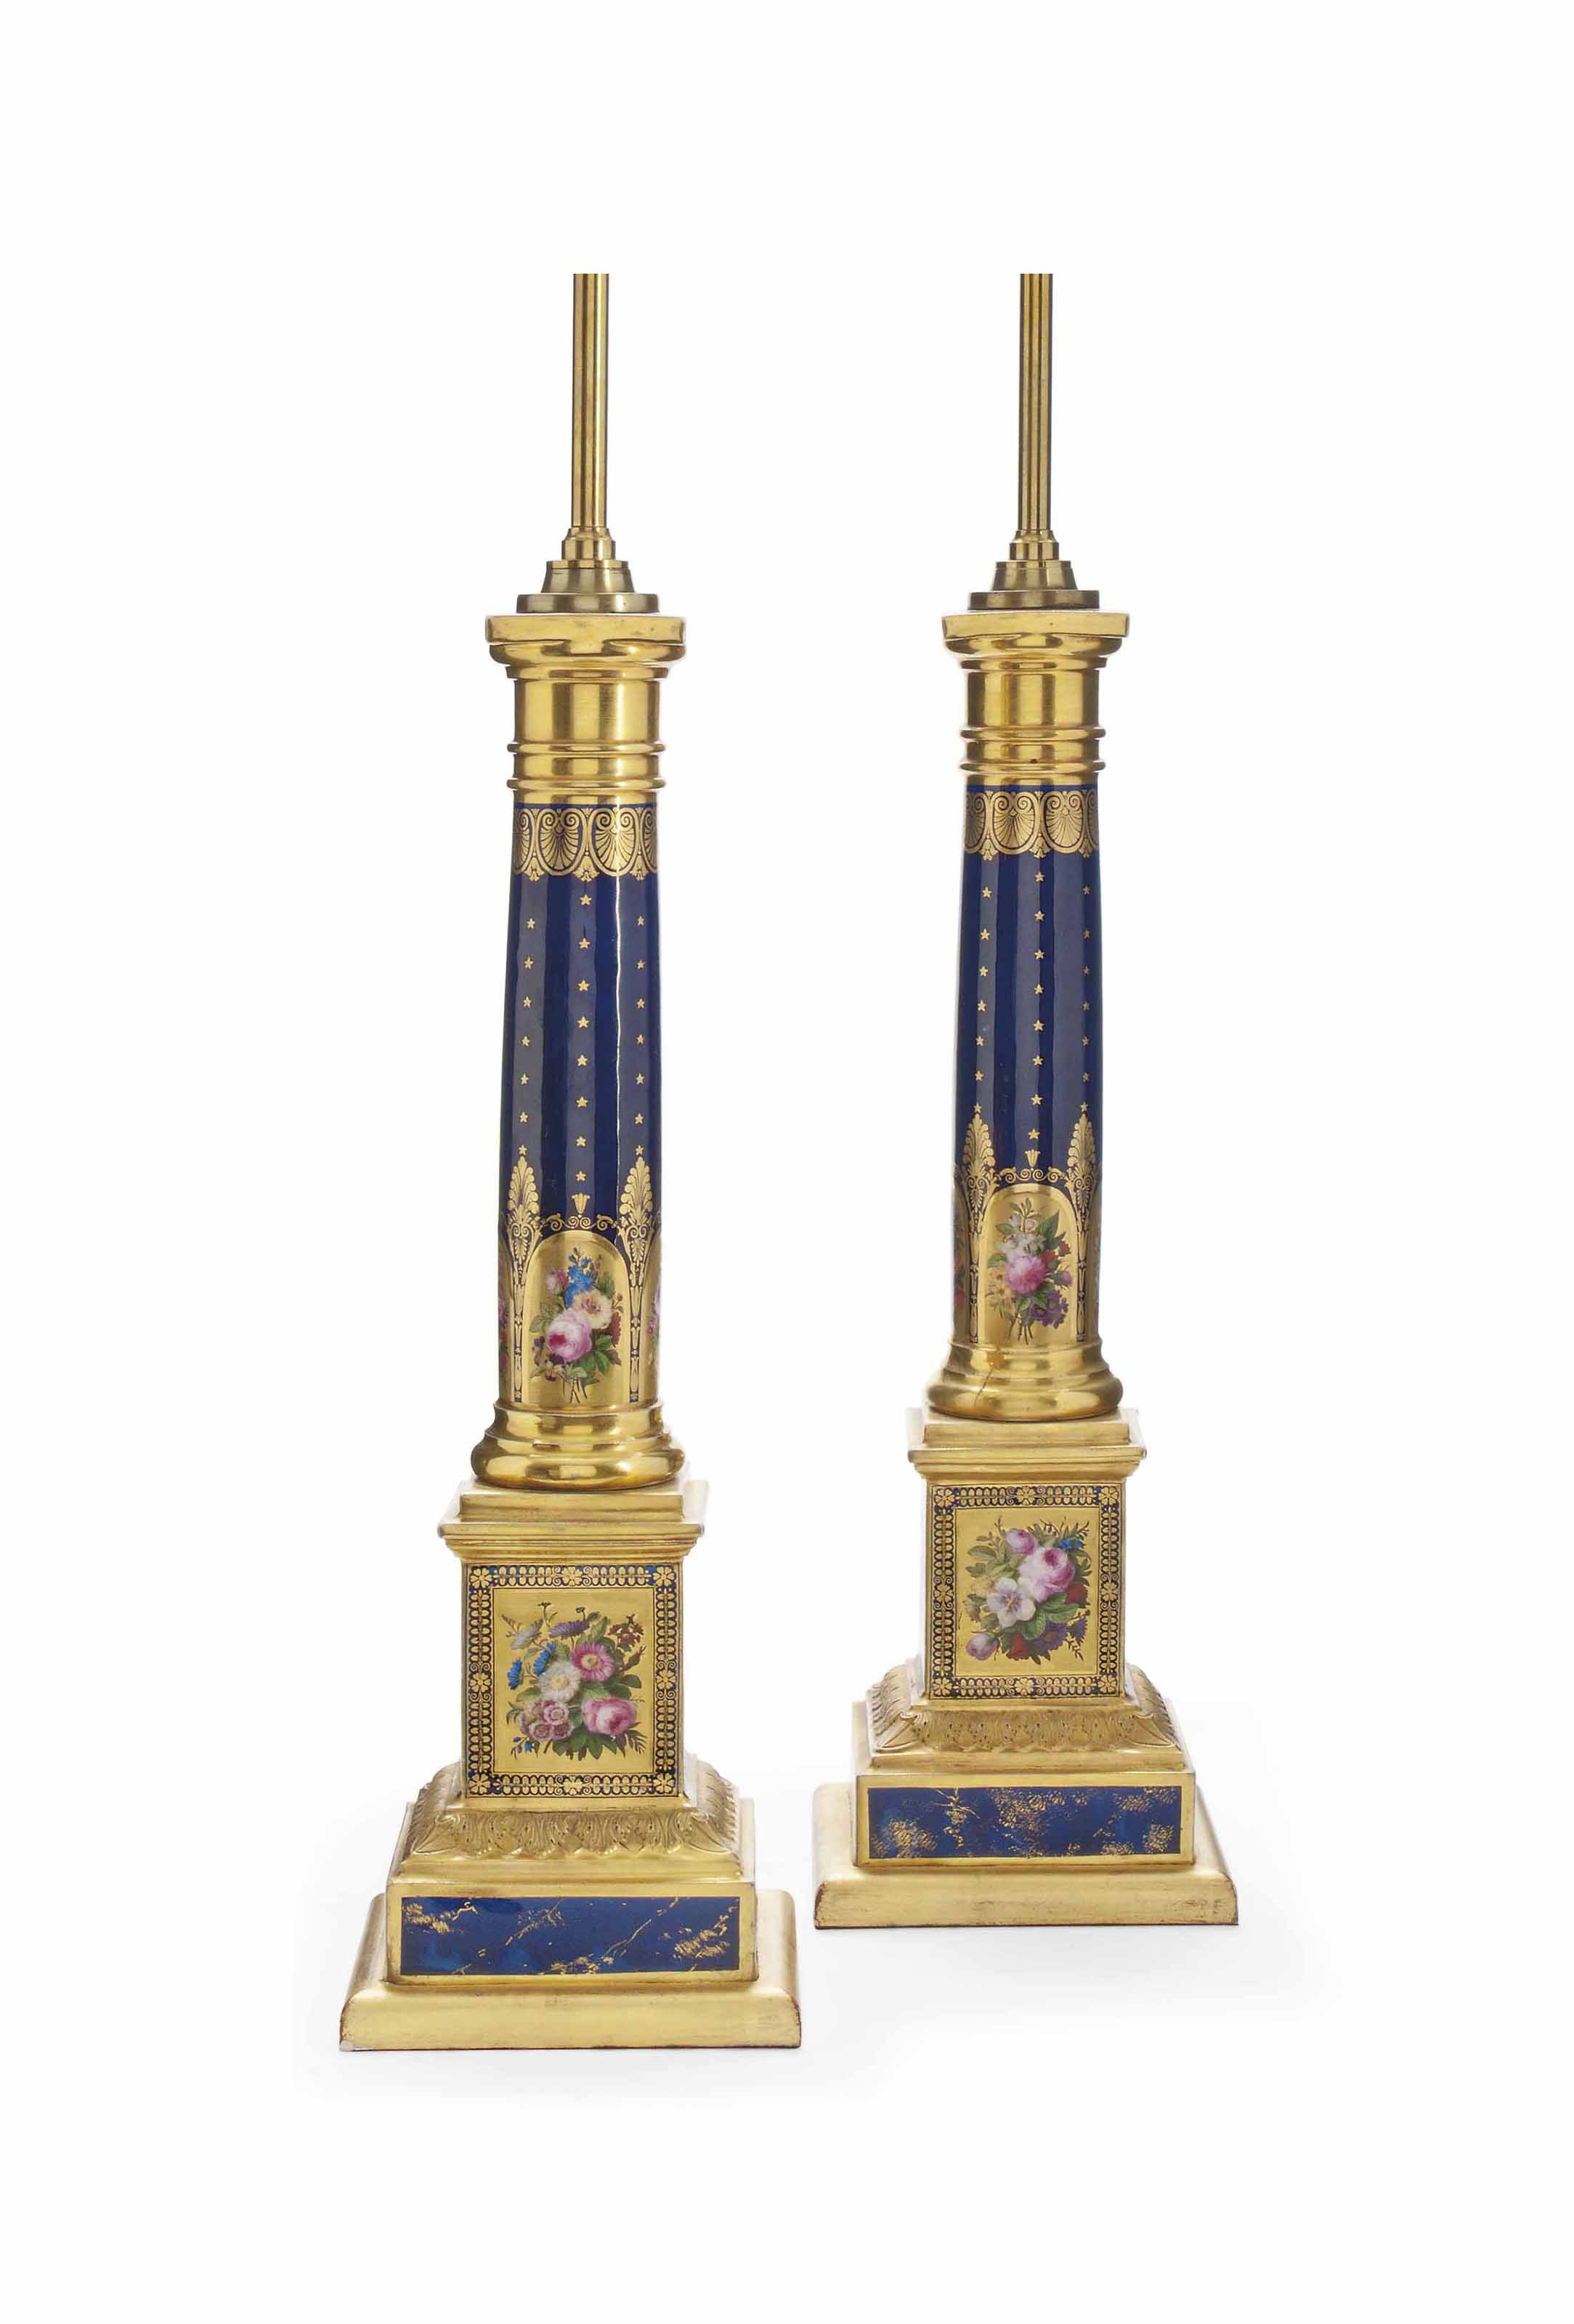 A PAIR OF FRENCH PORCELAIN DARK-BLUE-GROUND COLUMN LAMP-BASES